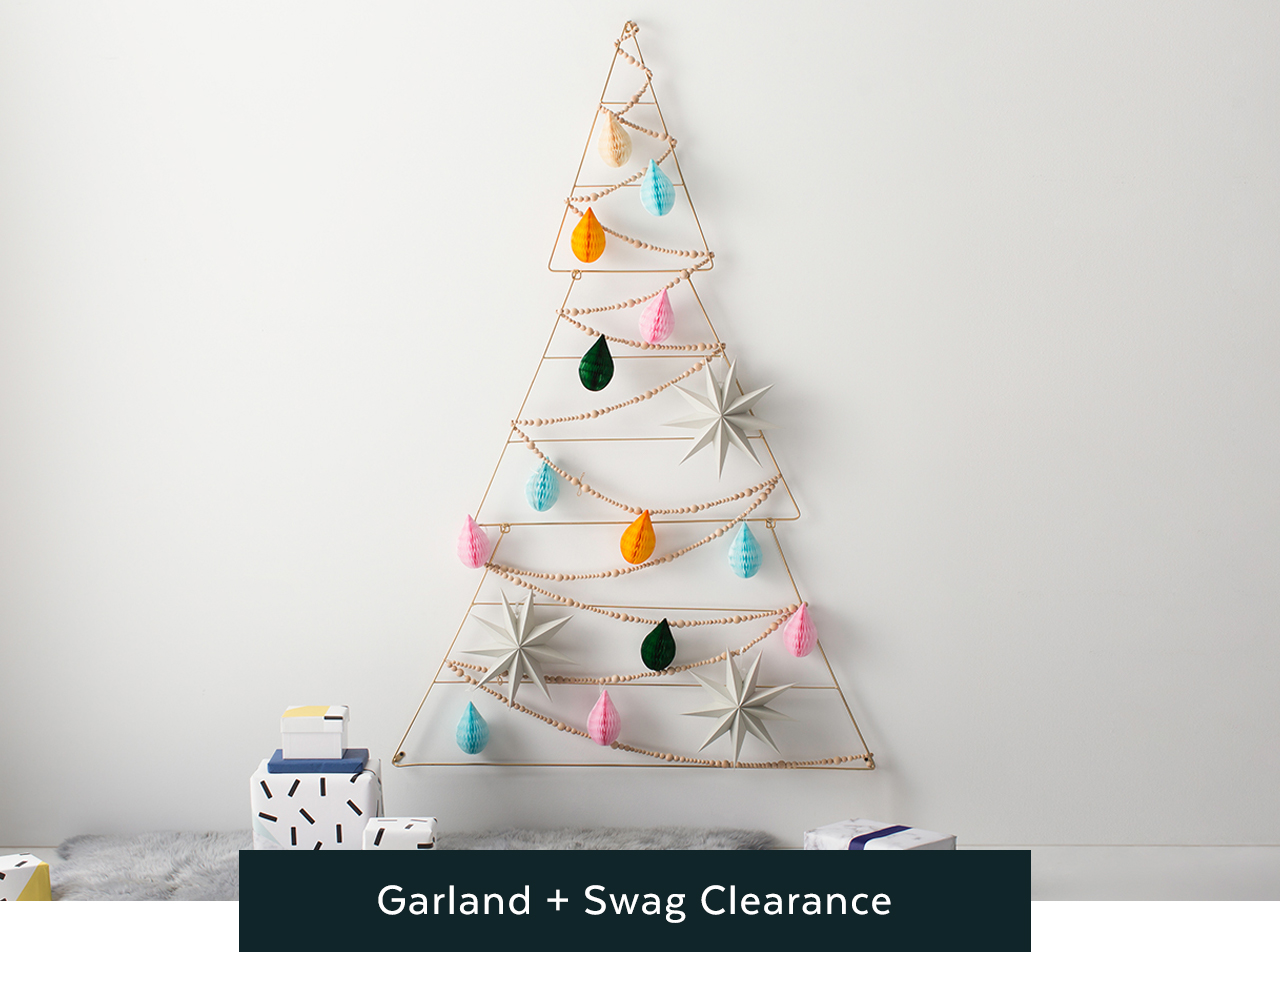 Garland and swag clearance